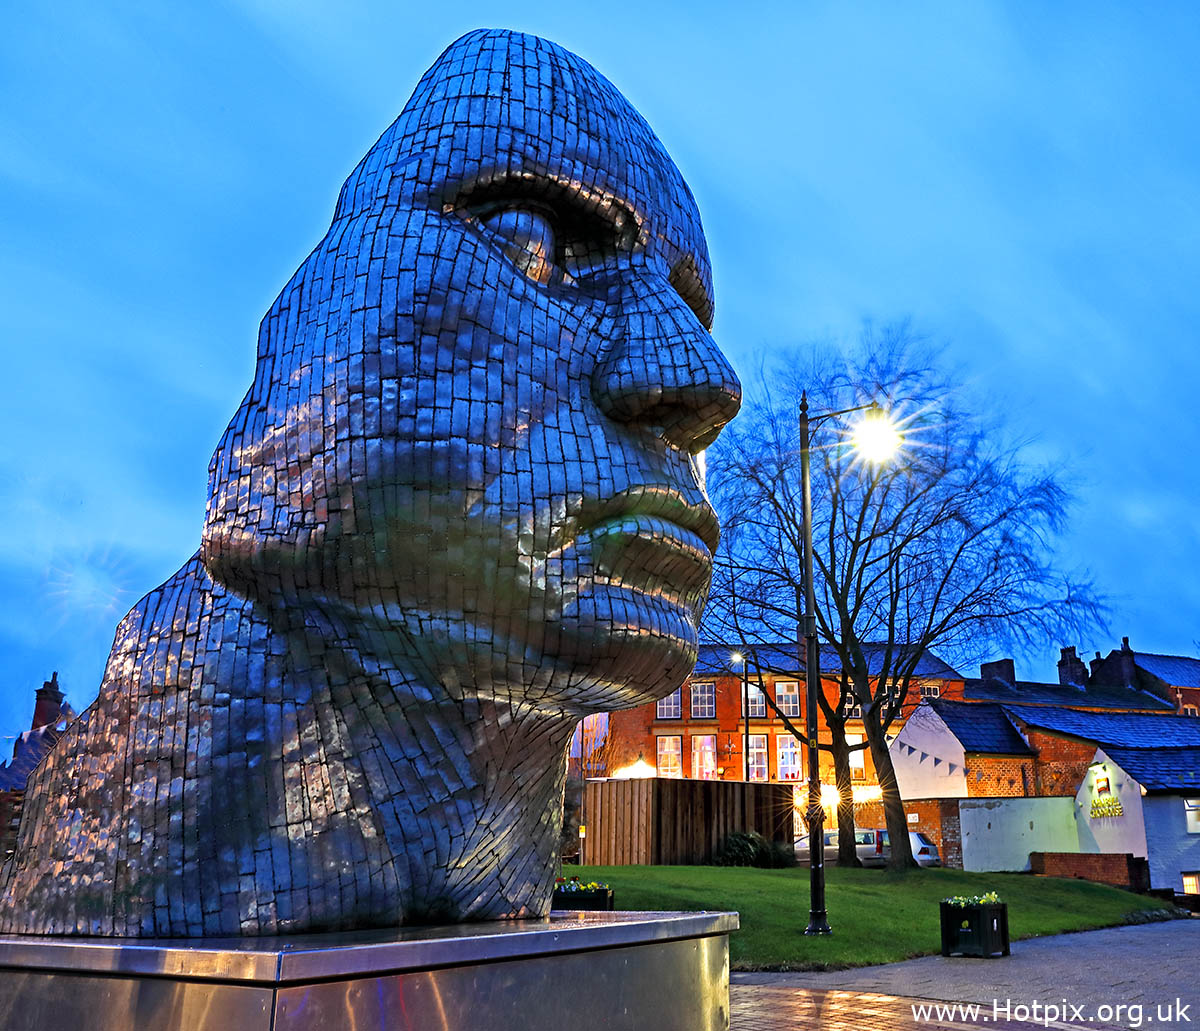 Dusk,night,art,Face Of wigan,The Face Of Wigan,Wigan,Town Centre,HousingITguy,Project365,2nd 365,HotpixUK365,Tone Smith,GoTonySmith,365,2365,one a day,Tony Smith,Hotpix,stainless steel,sculpture,face,Rick Kirby,artwork,artist,Greater Manchester,Wigan Council